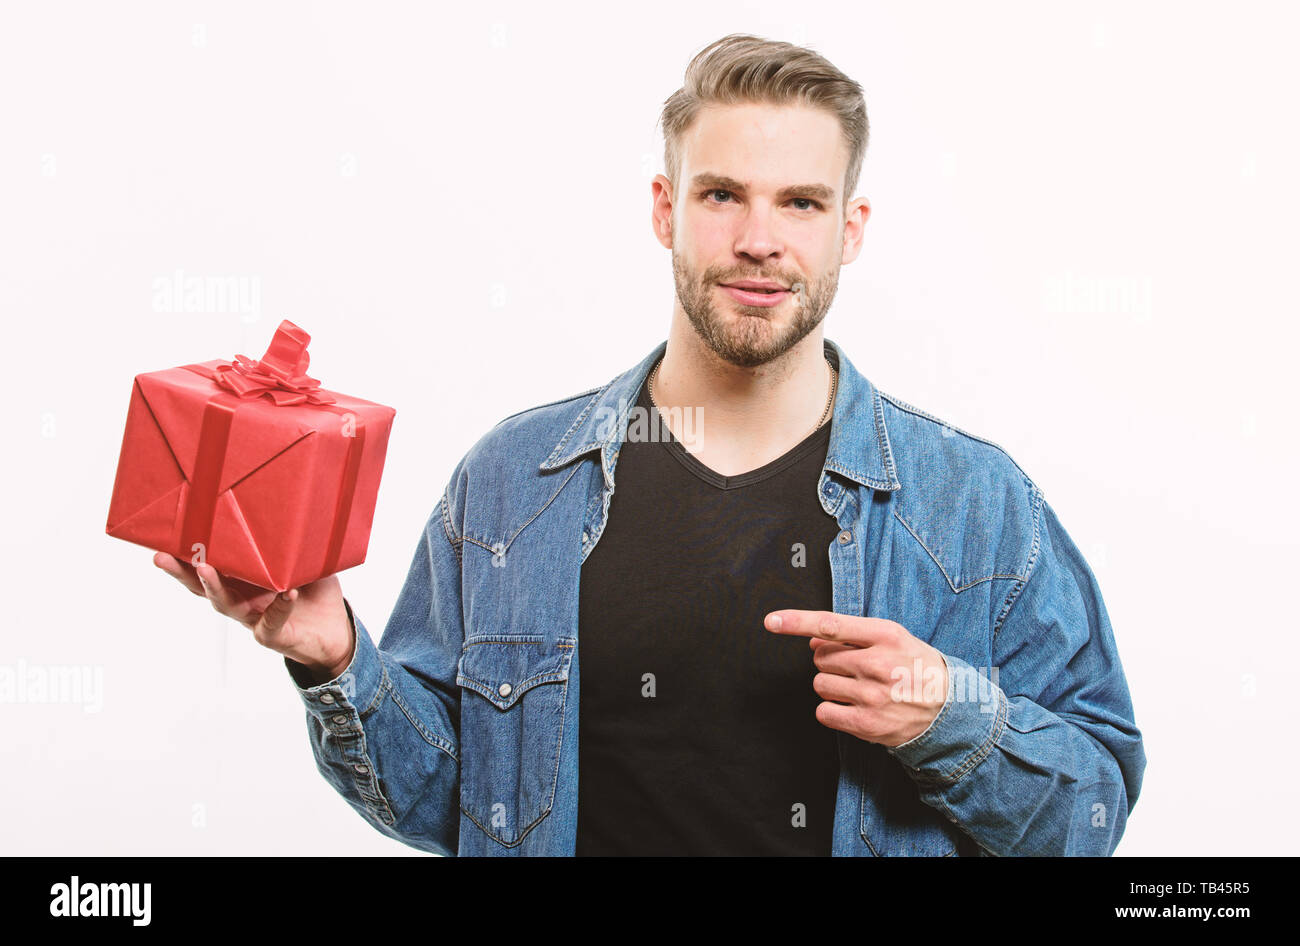 Hipster denim shirt hold gift box white background. Love and romantic feelings concept. Man with beard and happy face celebrate valentines day. Valentines day gift. Gift for girlfriend. Romantic gift. - Stock Image